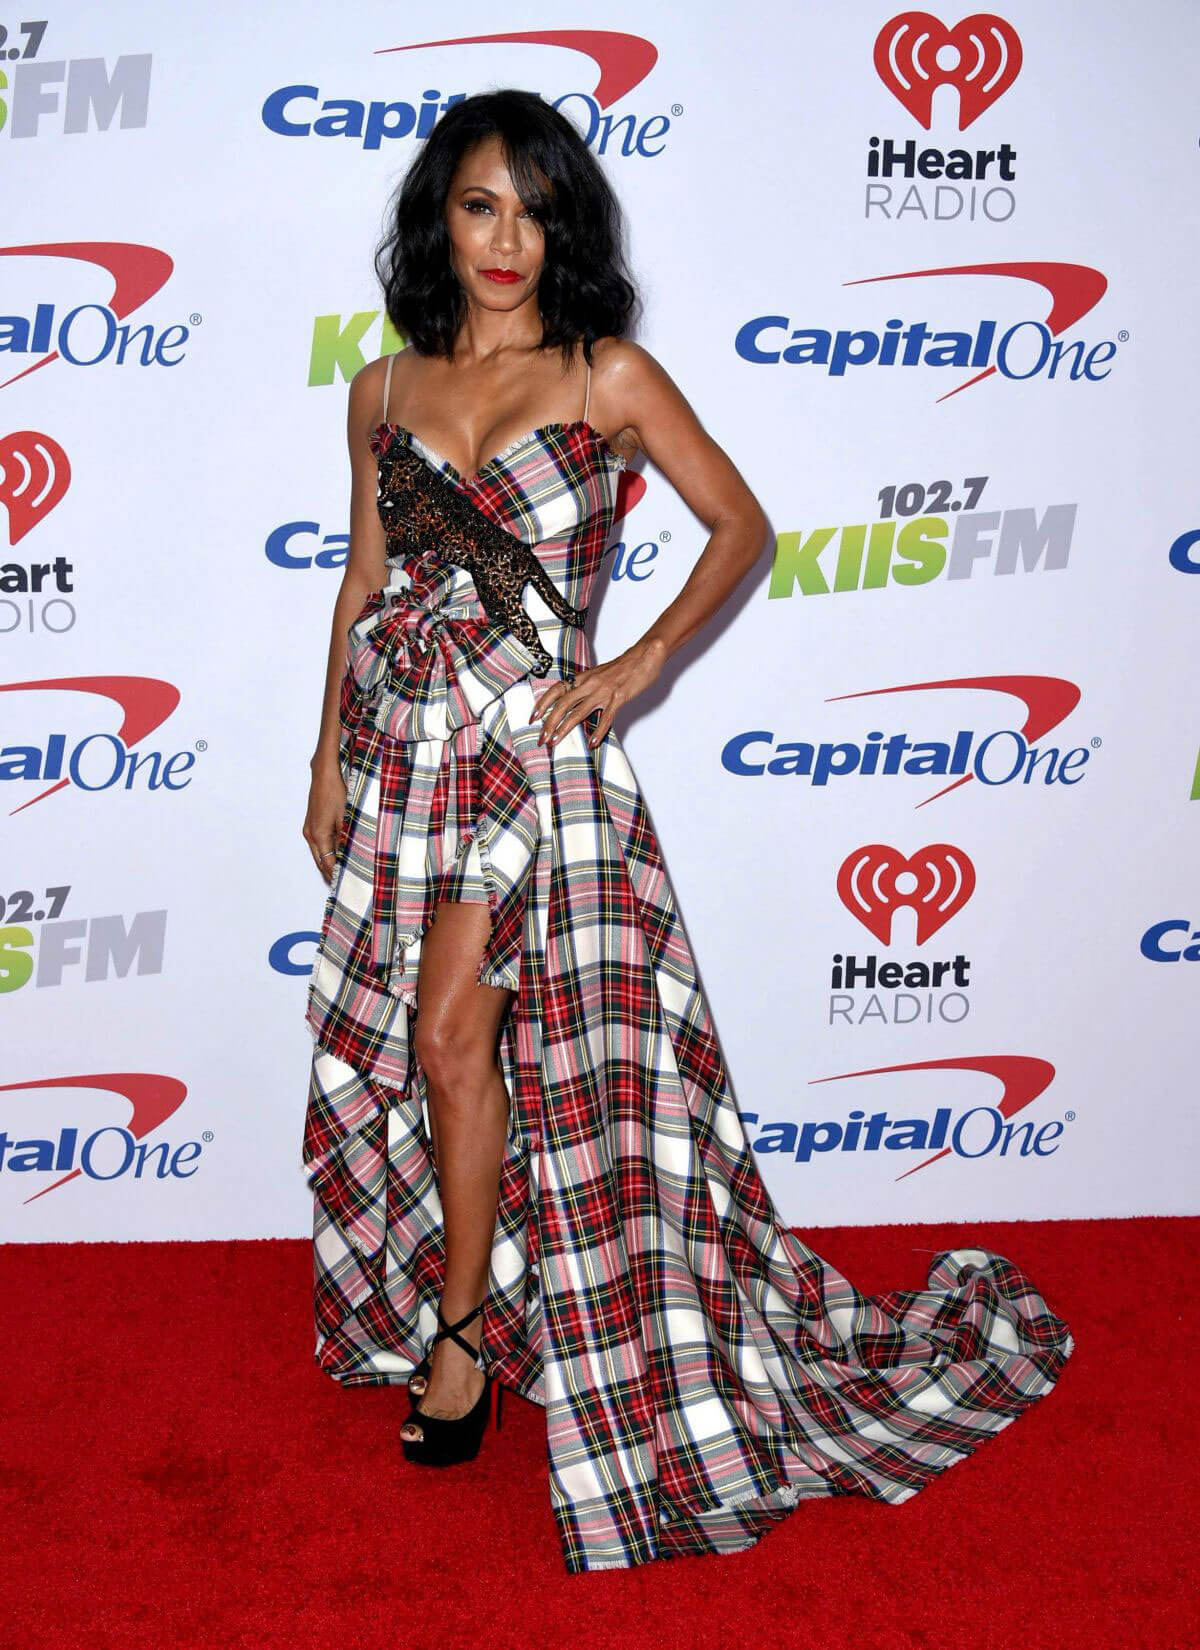 Jada Pinkett Smith Stills at 102.7 KIIS FM's Jingle Ball in Los Angeles